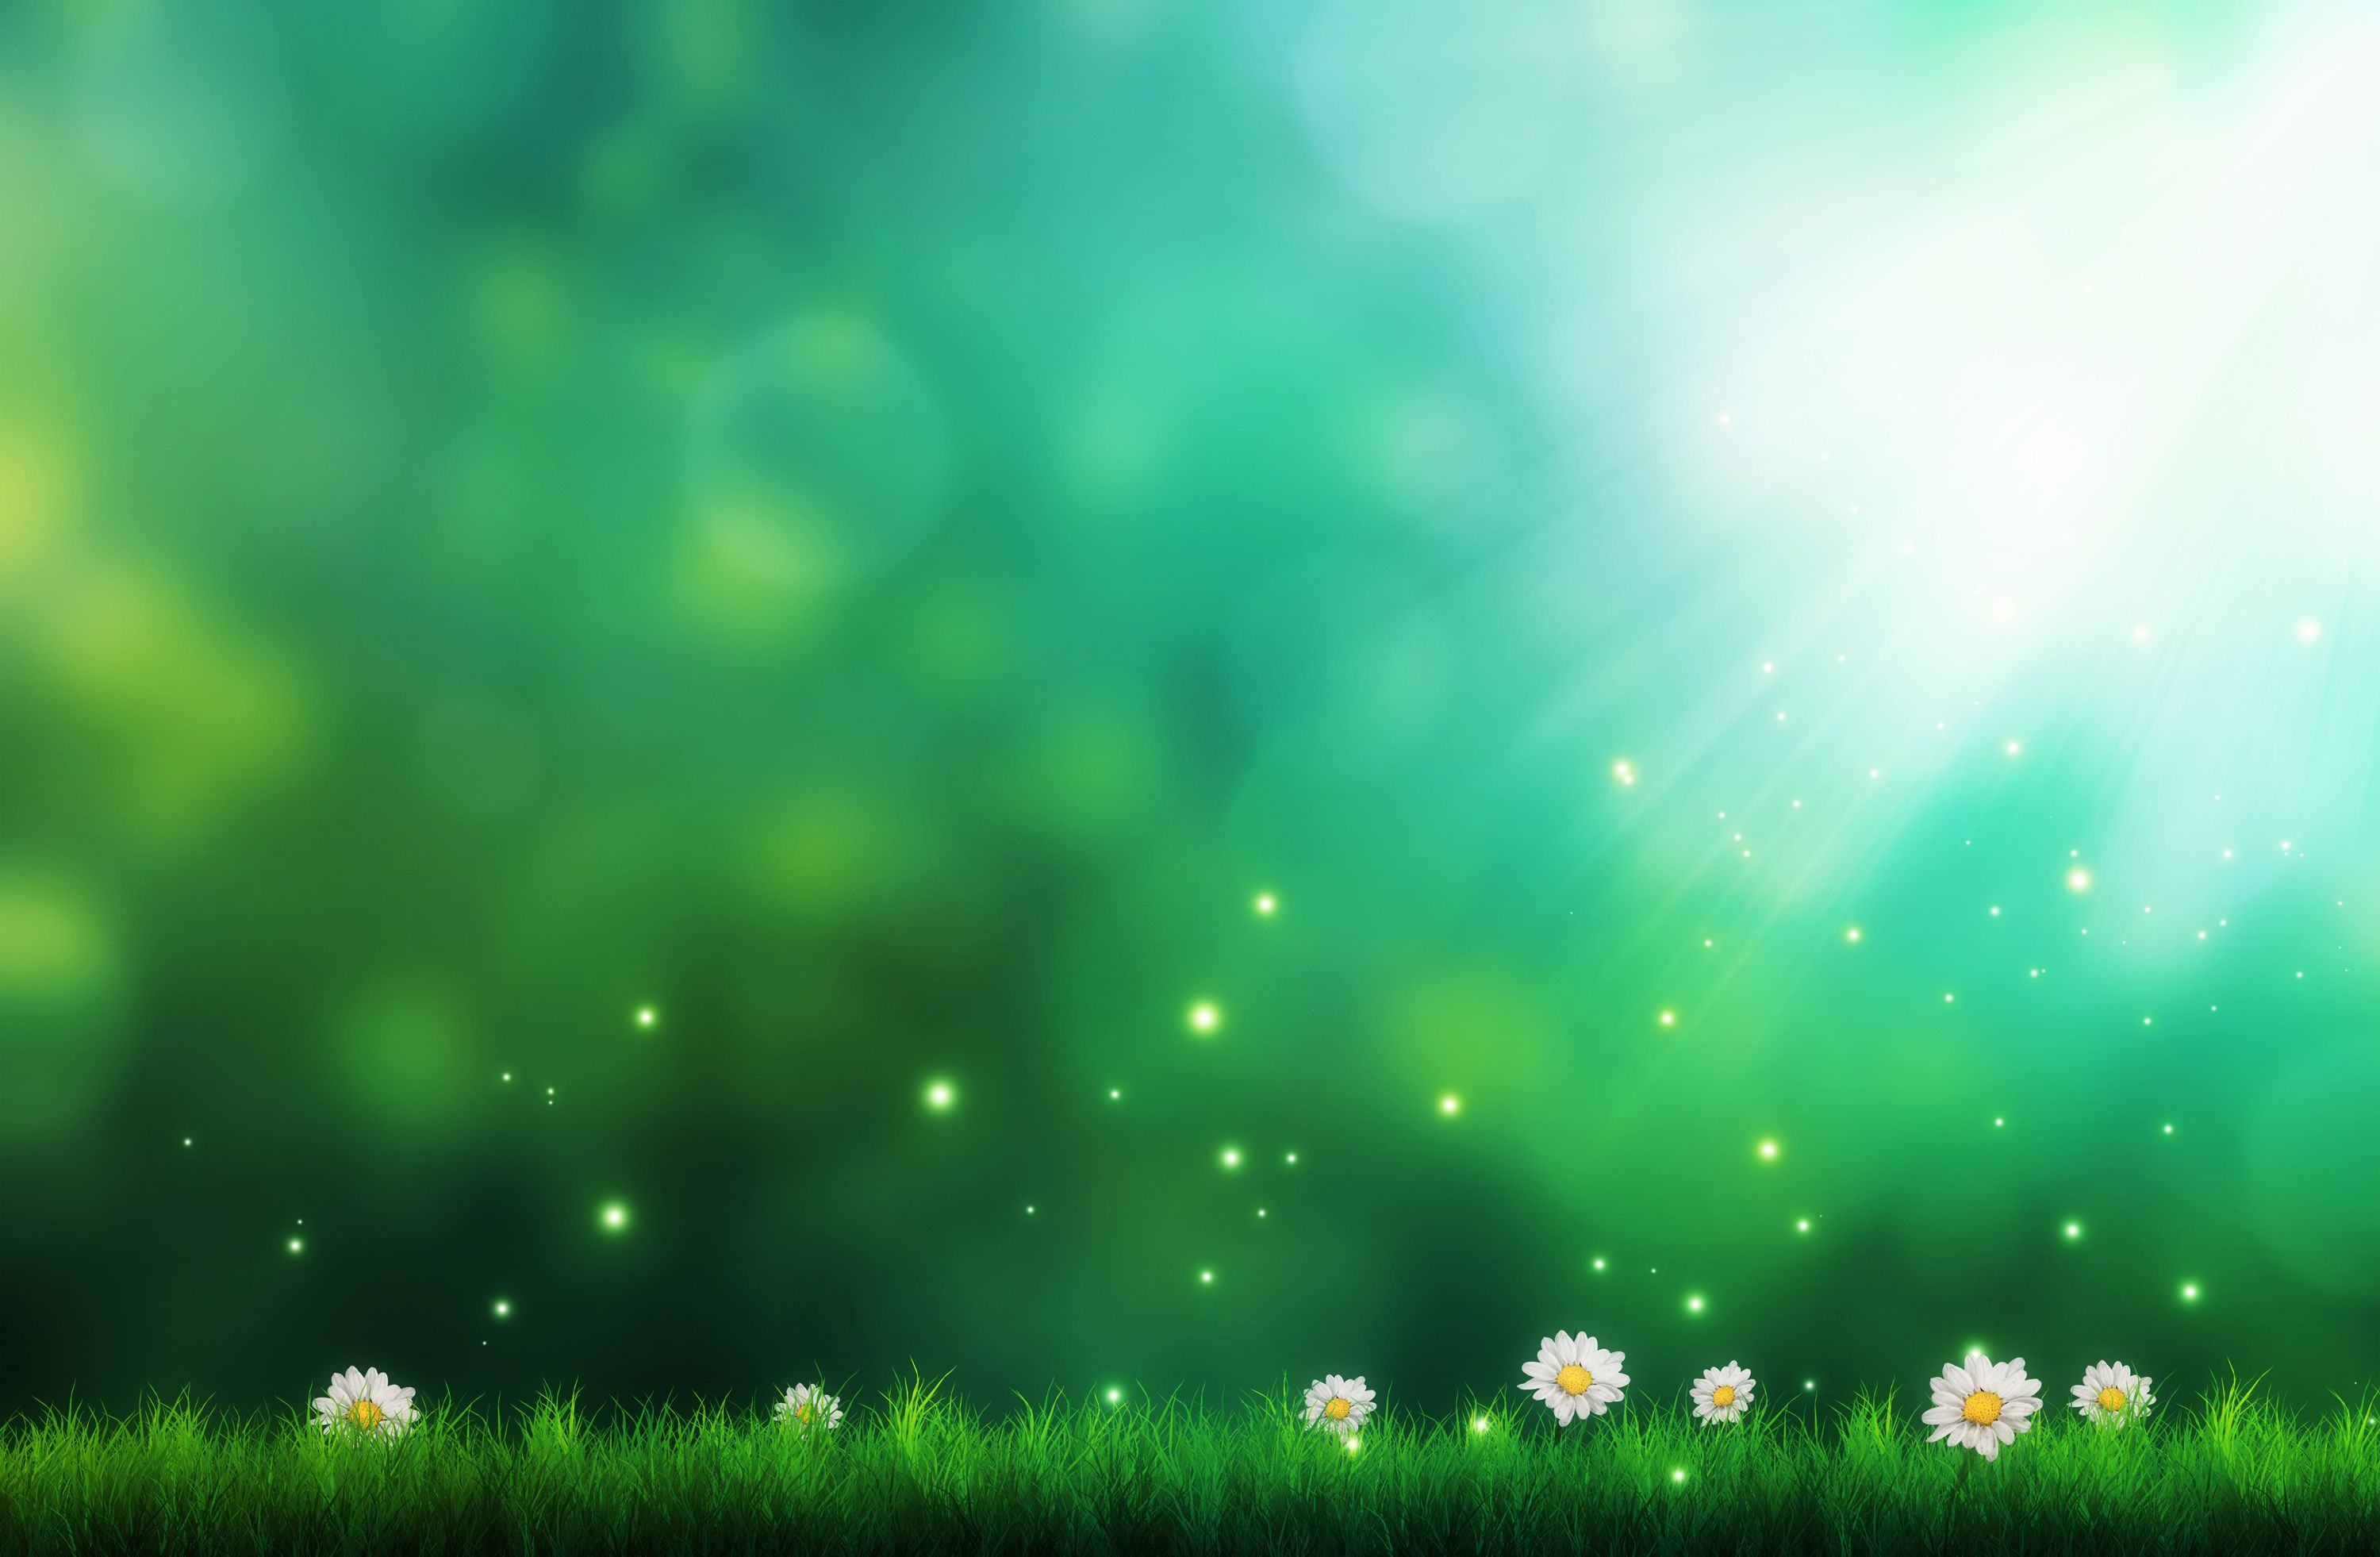 Art Flowers Daisies Grass Illustration Green Background Sparks Jpg 3000 1962 Nature Backgrounds Iphone Green Nature Background Hd Wallpaper